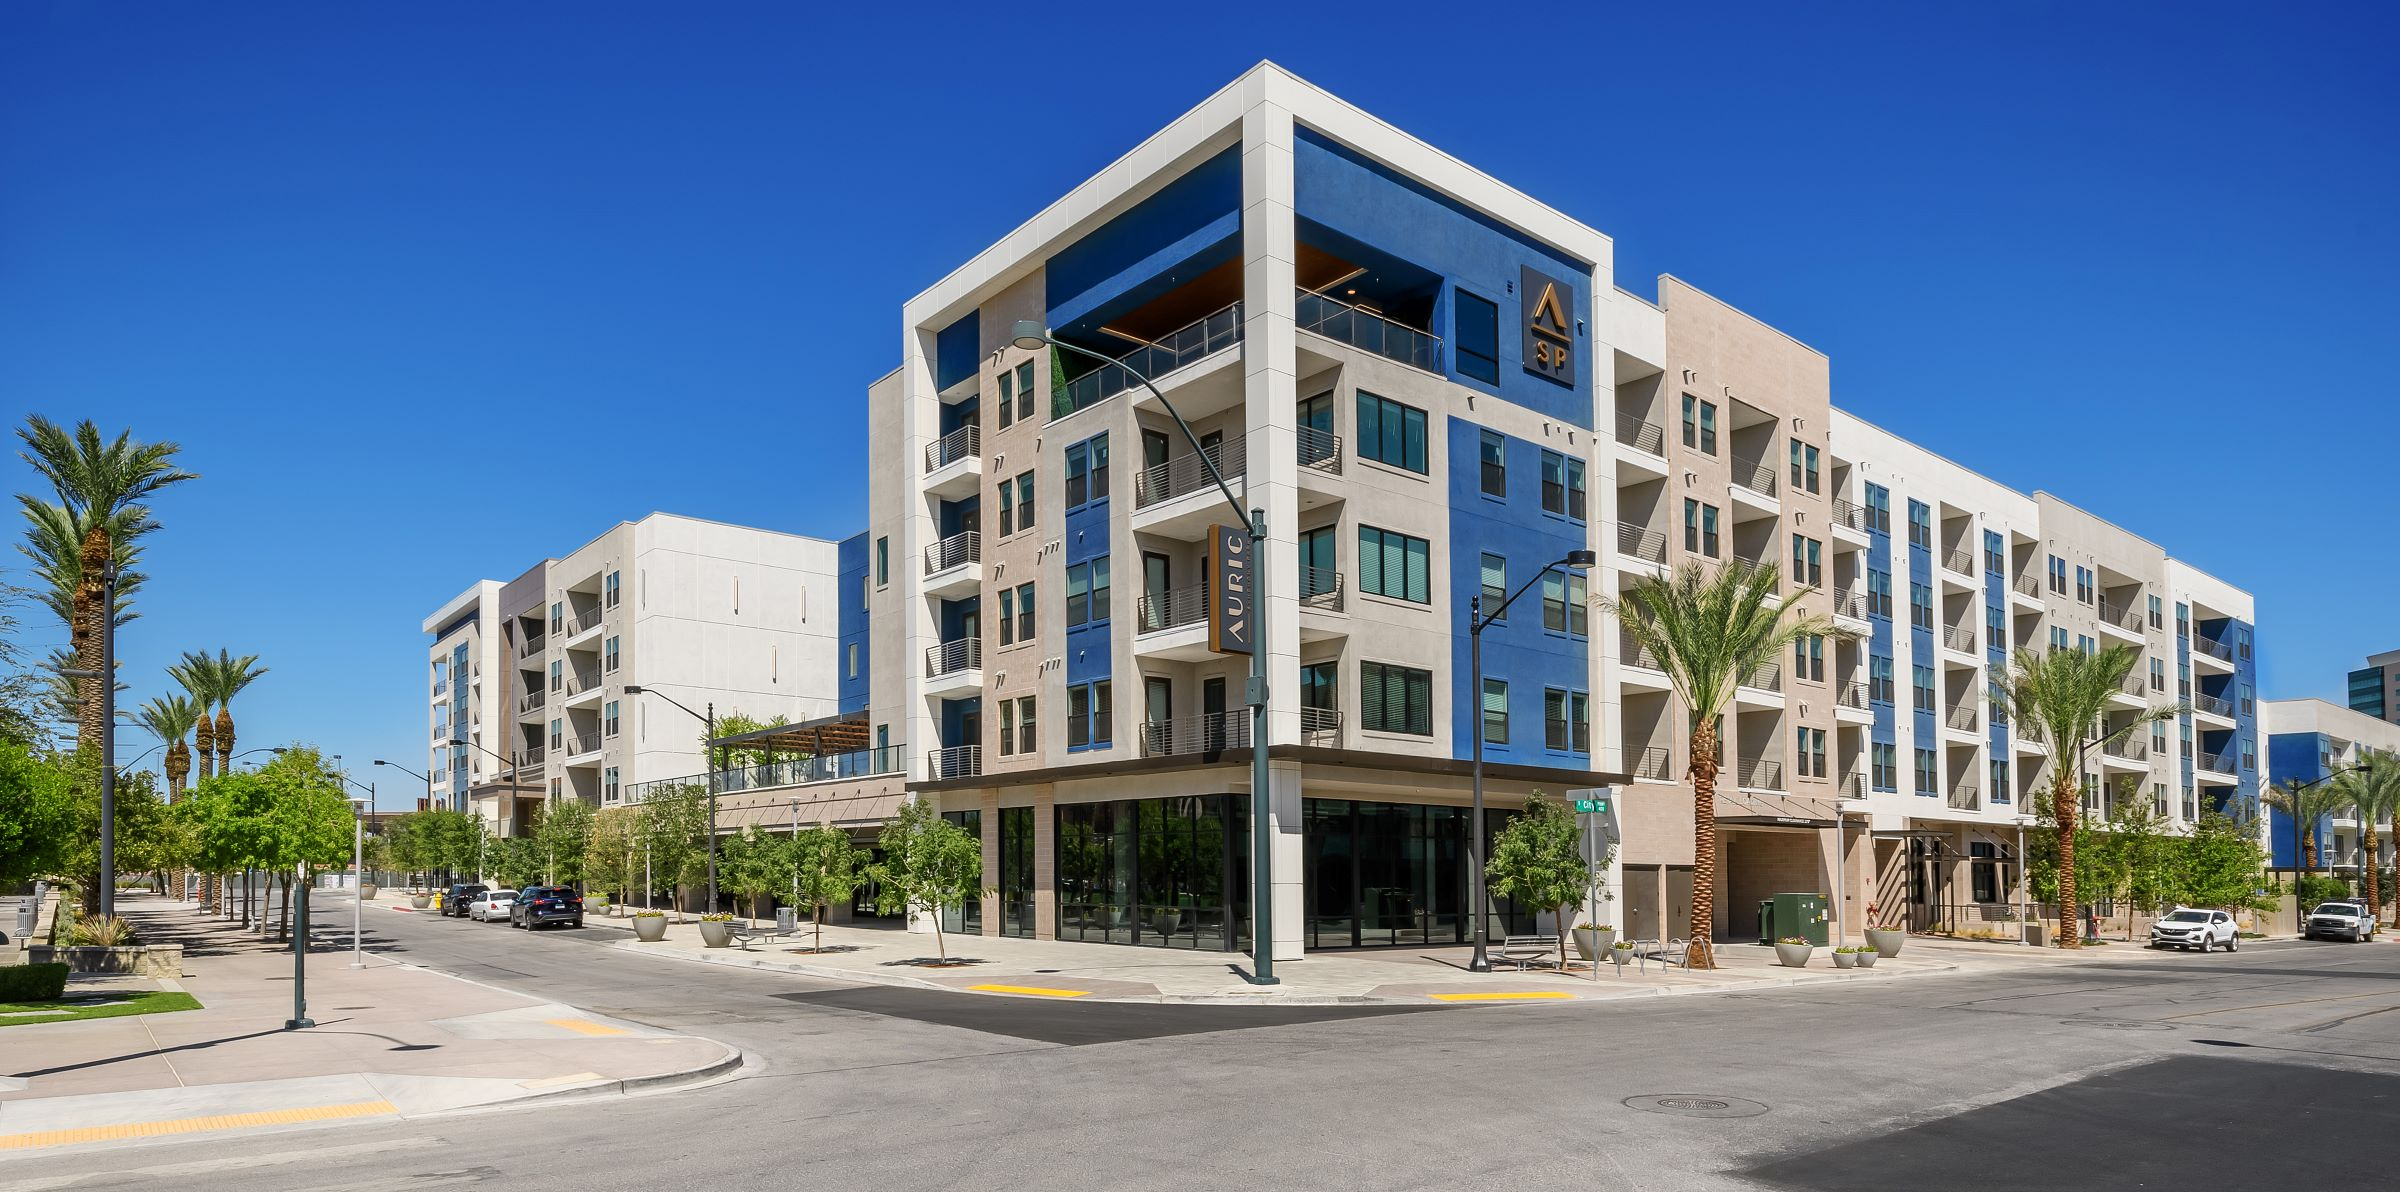 exterior view of the Auric Symphony Park apartment building in Las Vegas, Nevada